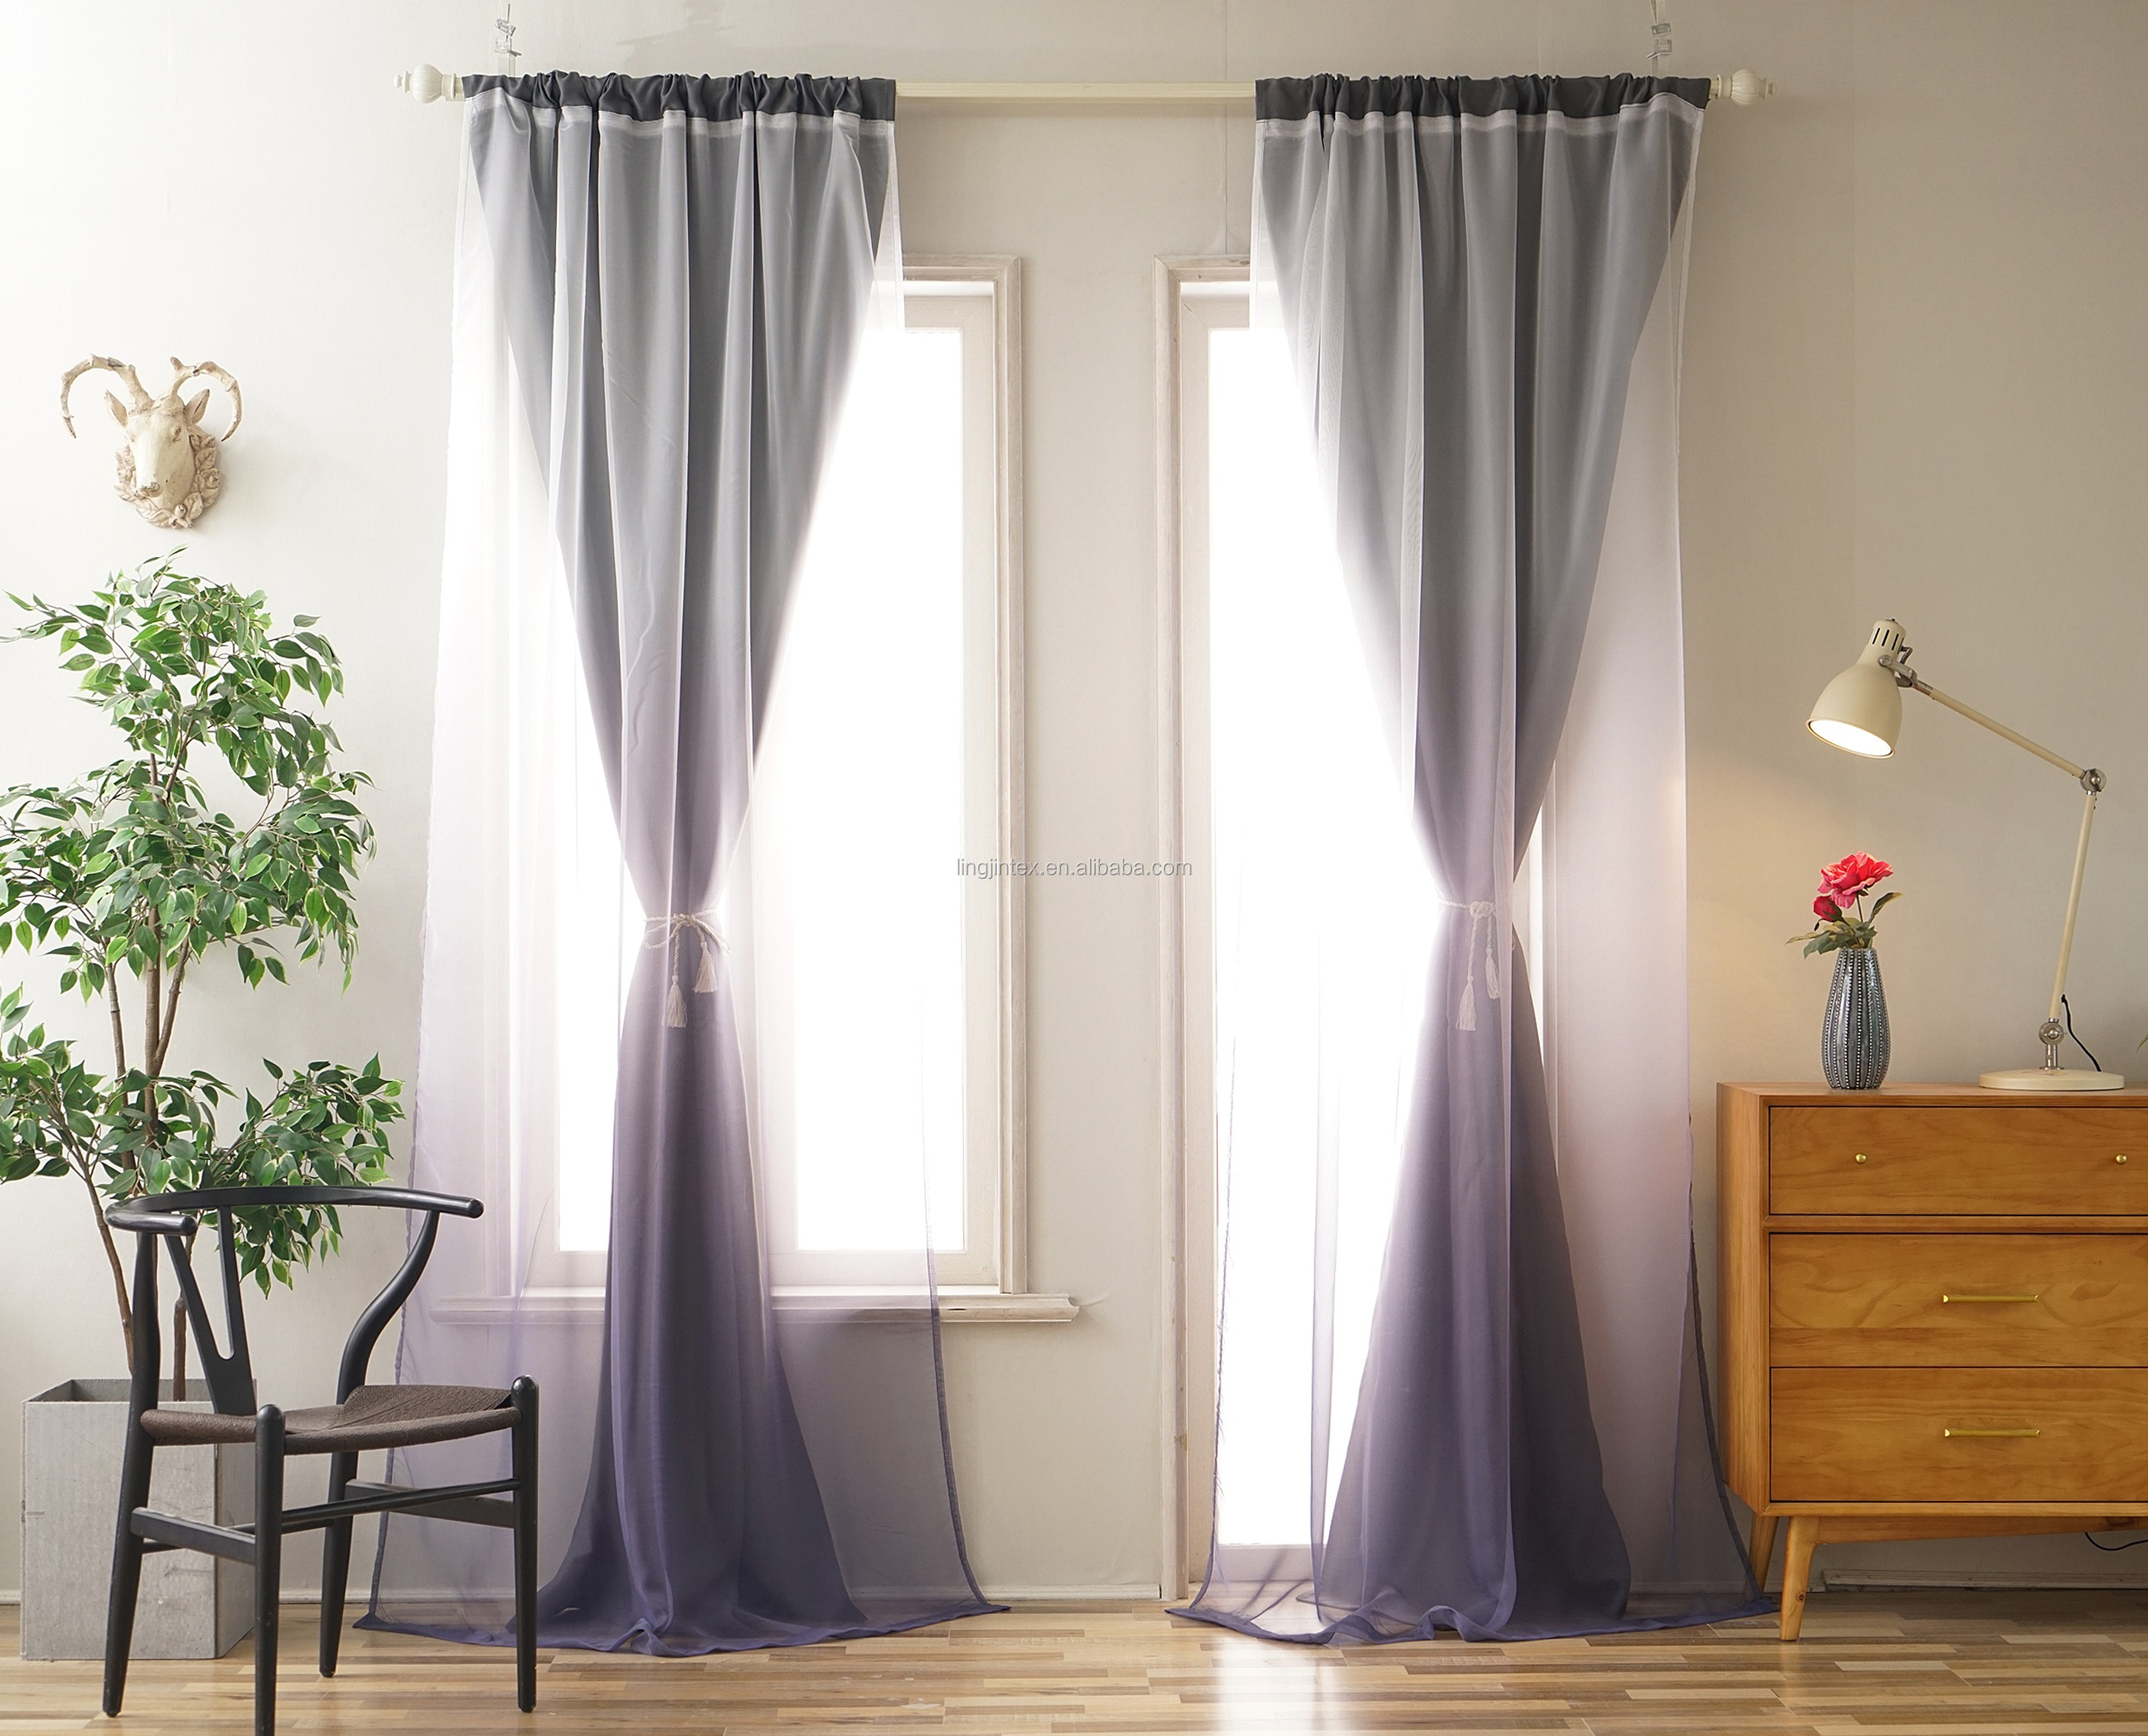 Window curtains blackout for living room grey ombre design fabric ready made curtain set